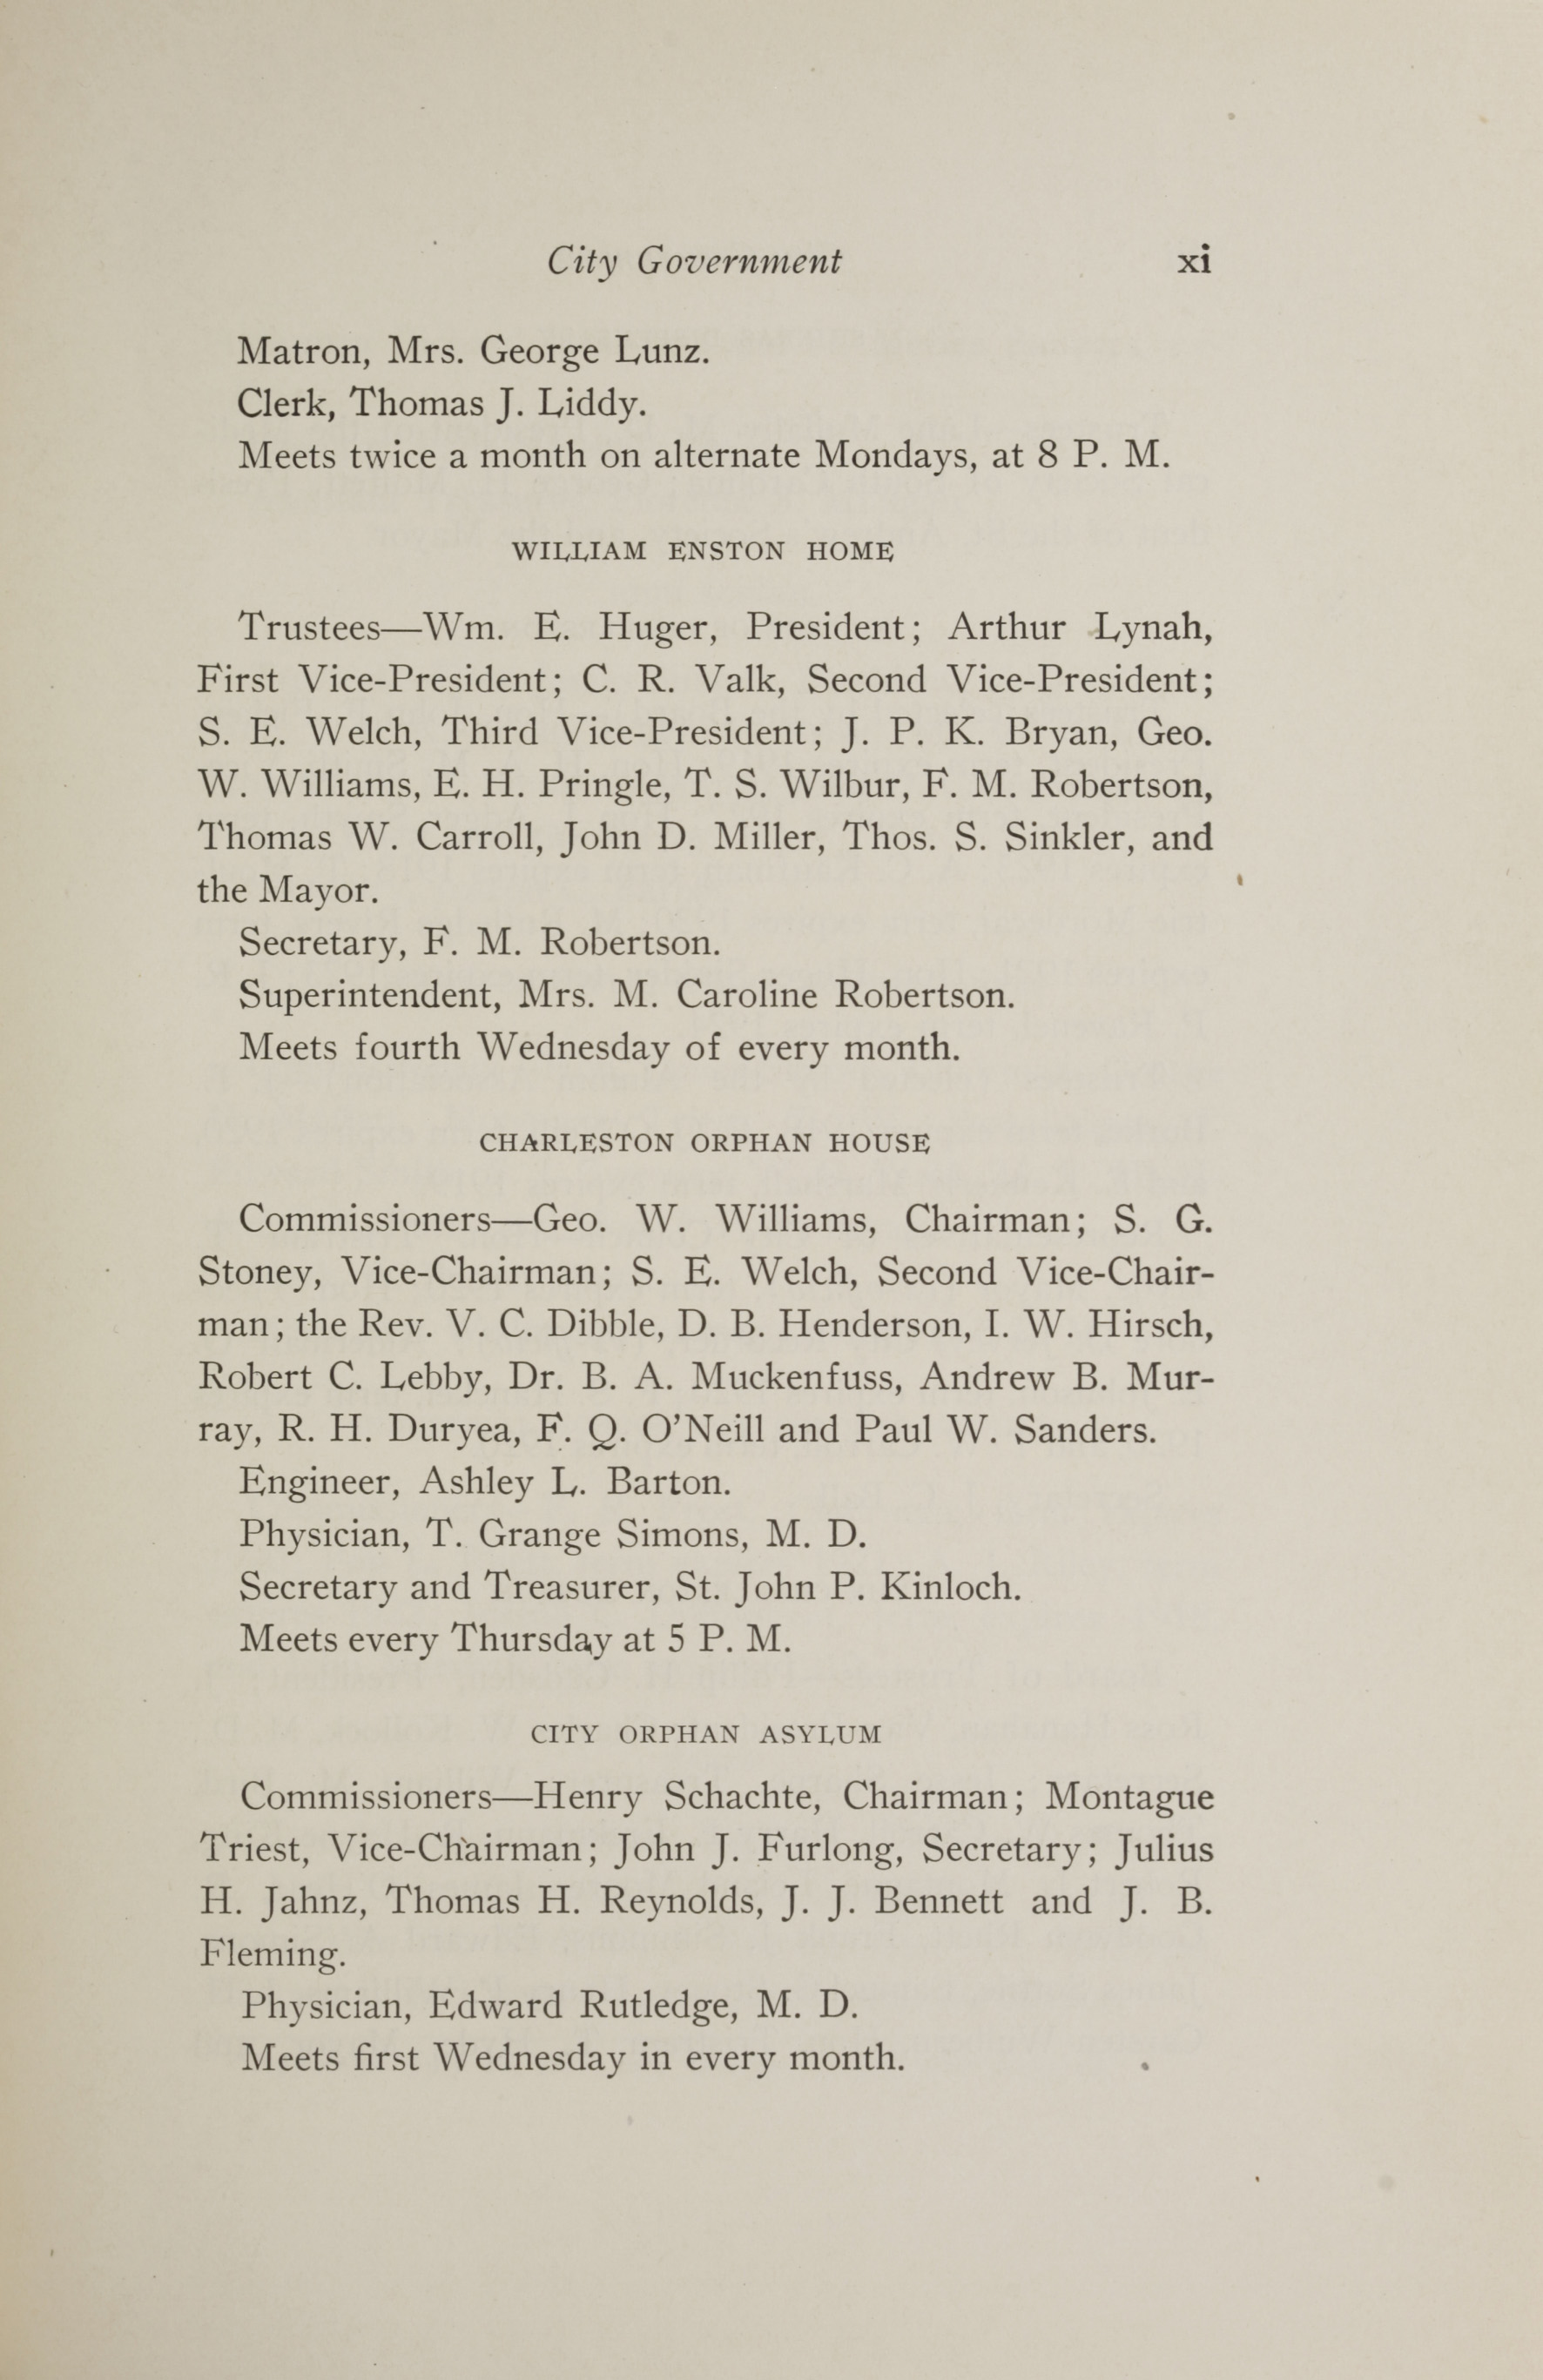 Charleston Yearbook, 1917, page xi